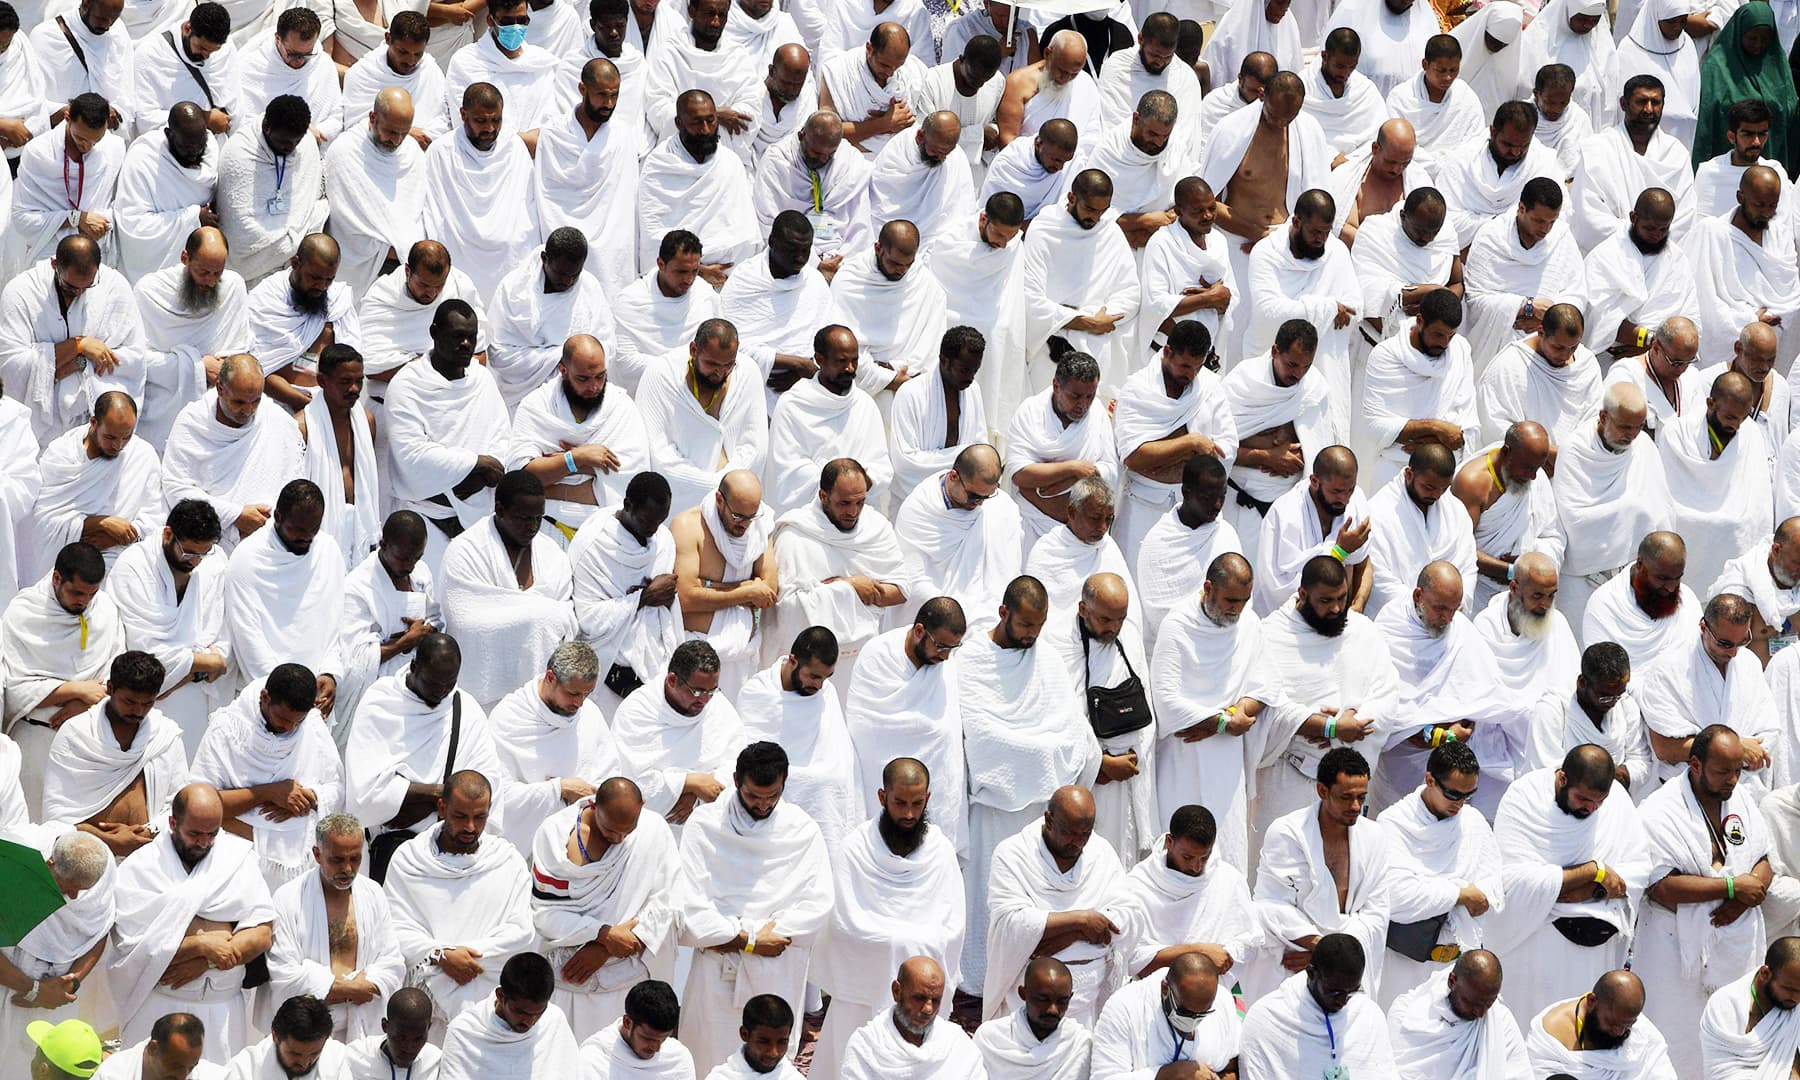 Pilgrims offer prayers at Mount Arafat. — AFP